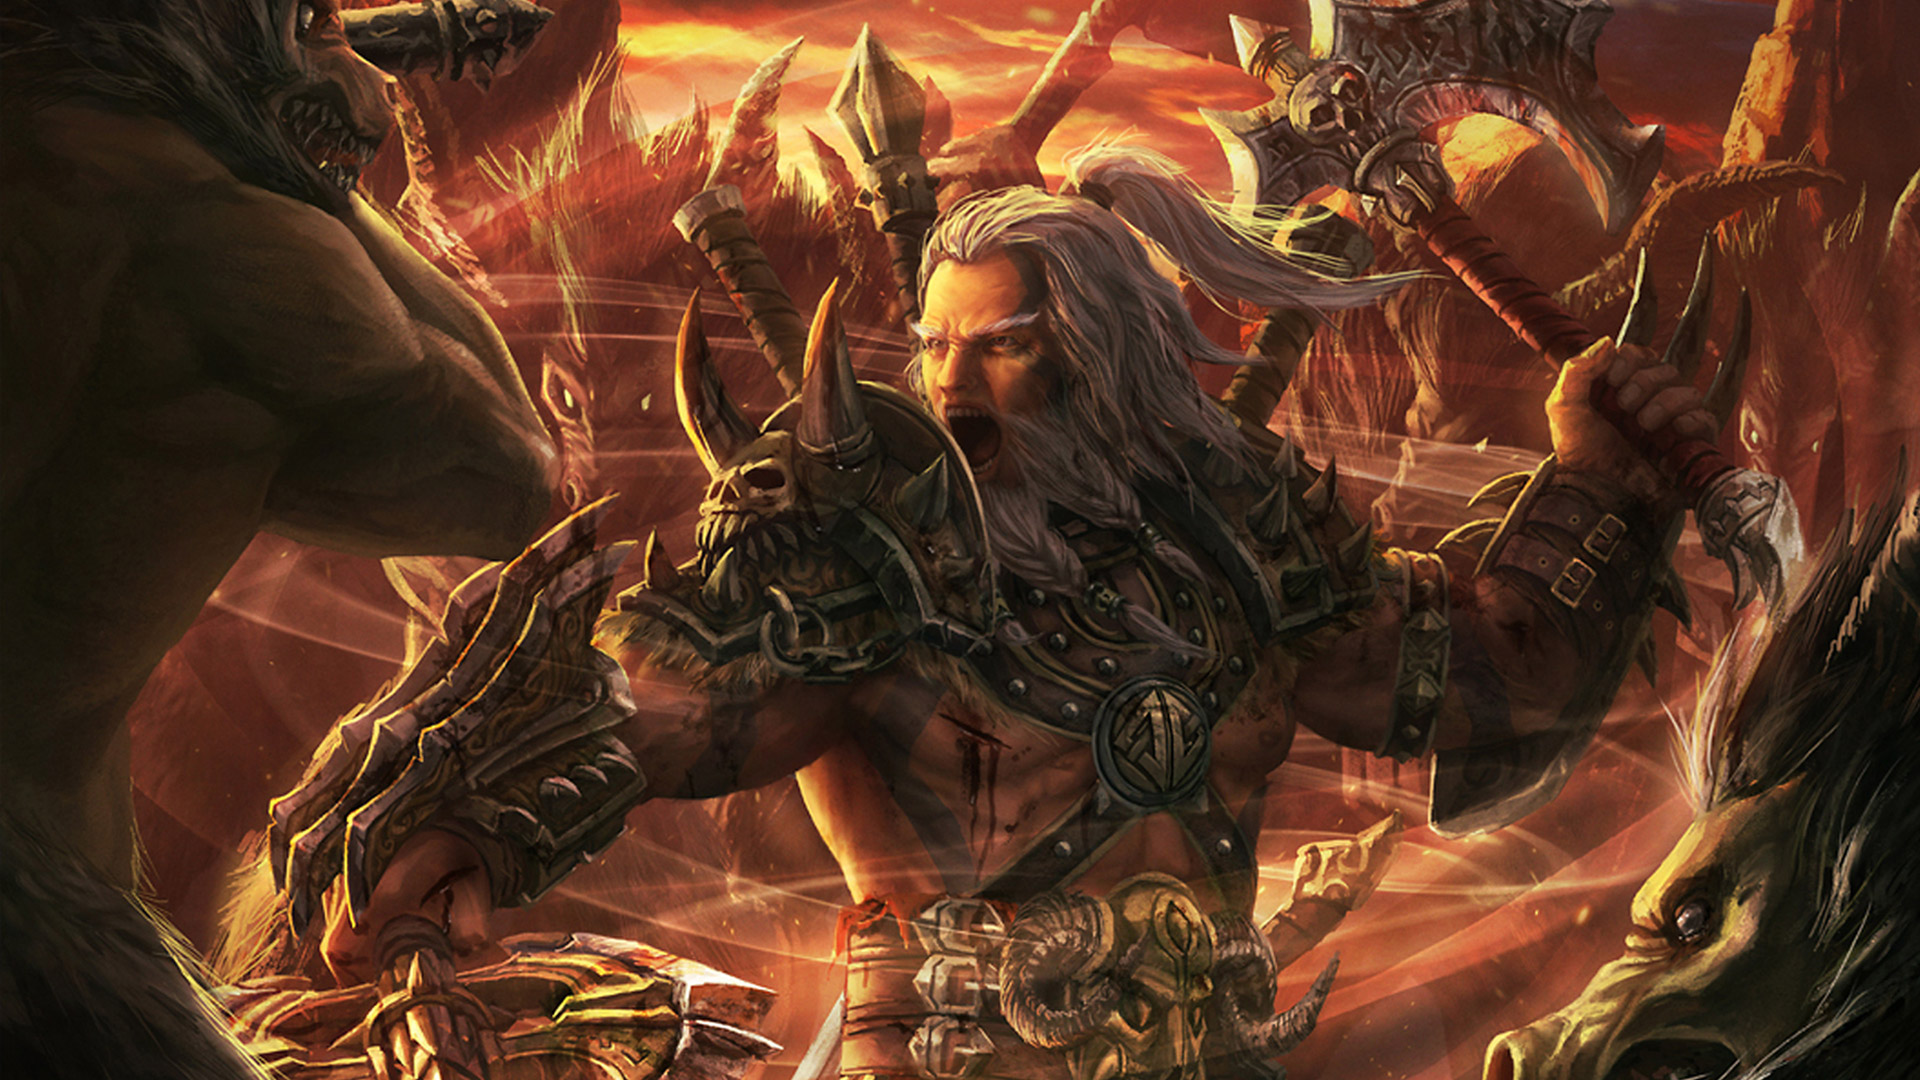 Diablo III Wallpaper in 1920x1080 1920x1080